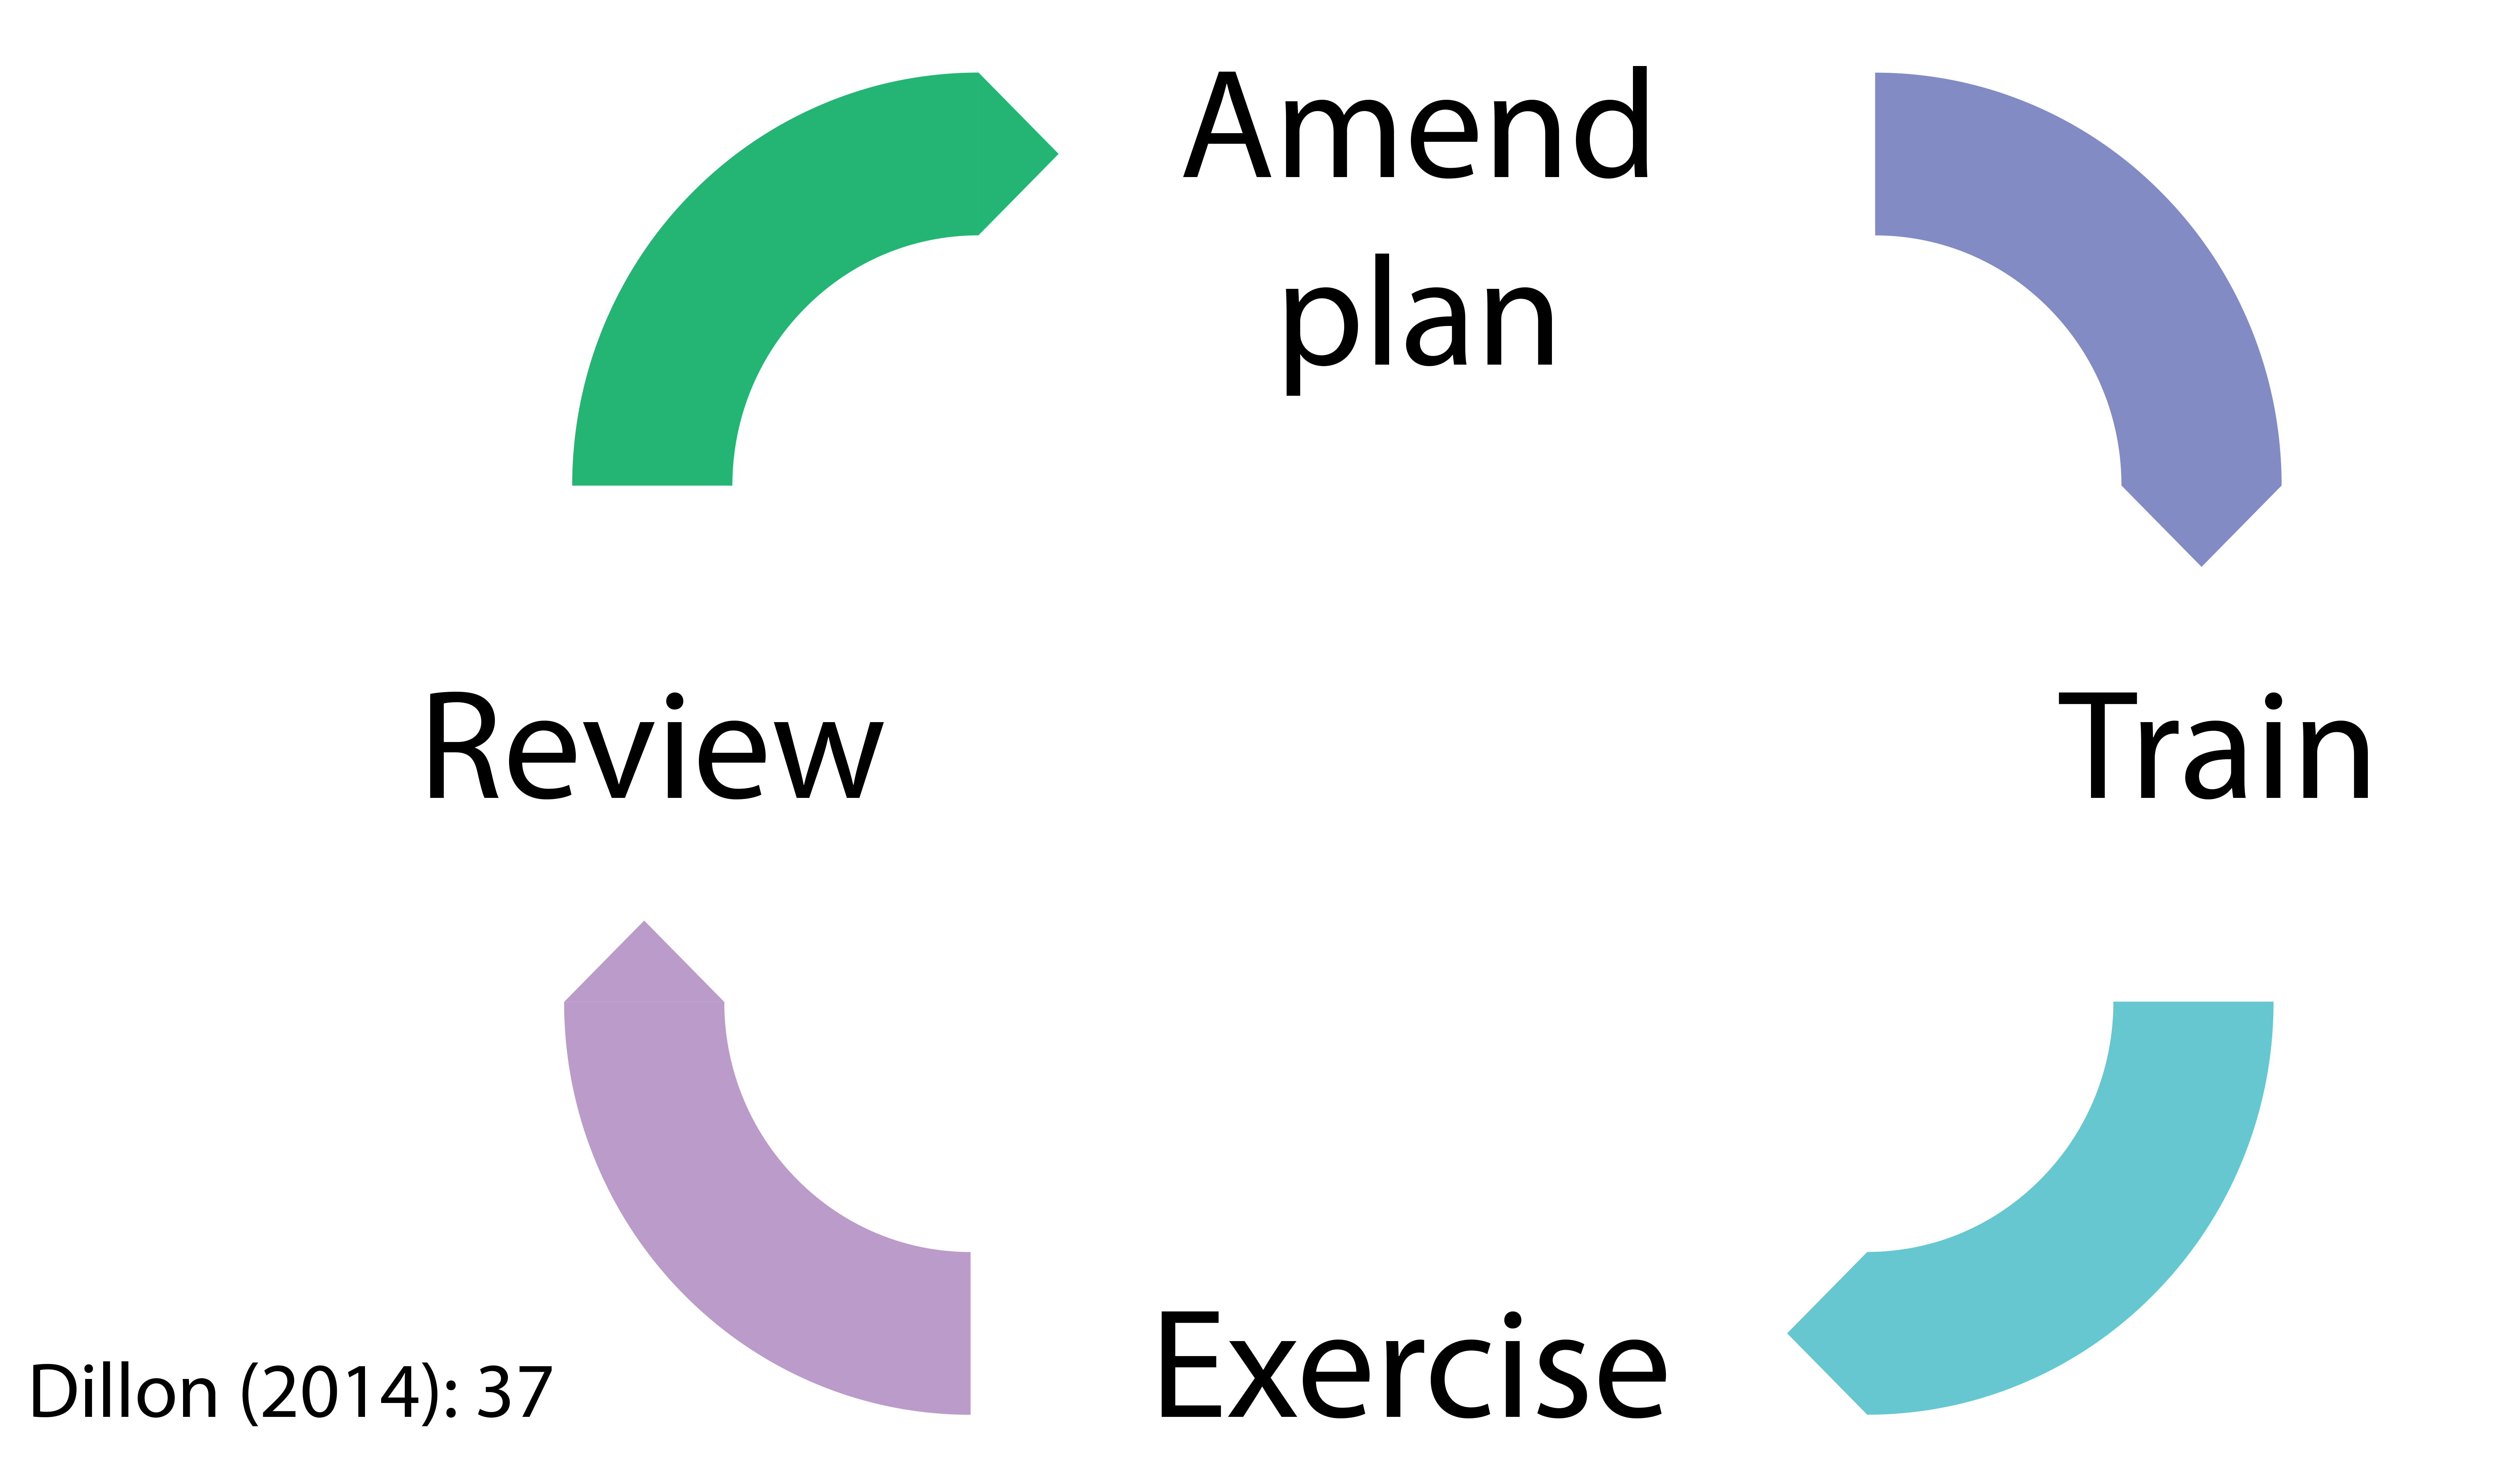 Figure from Dillon of the Planning Cycle